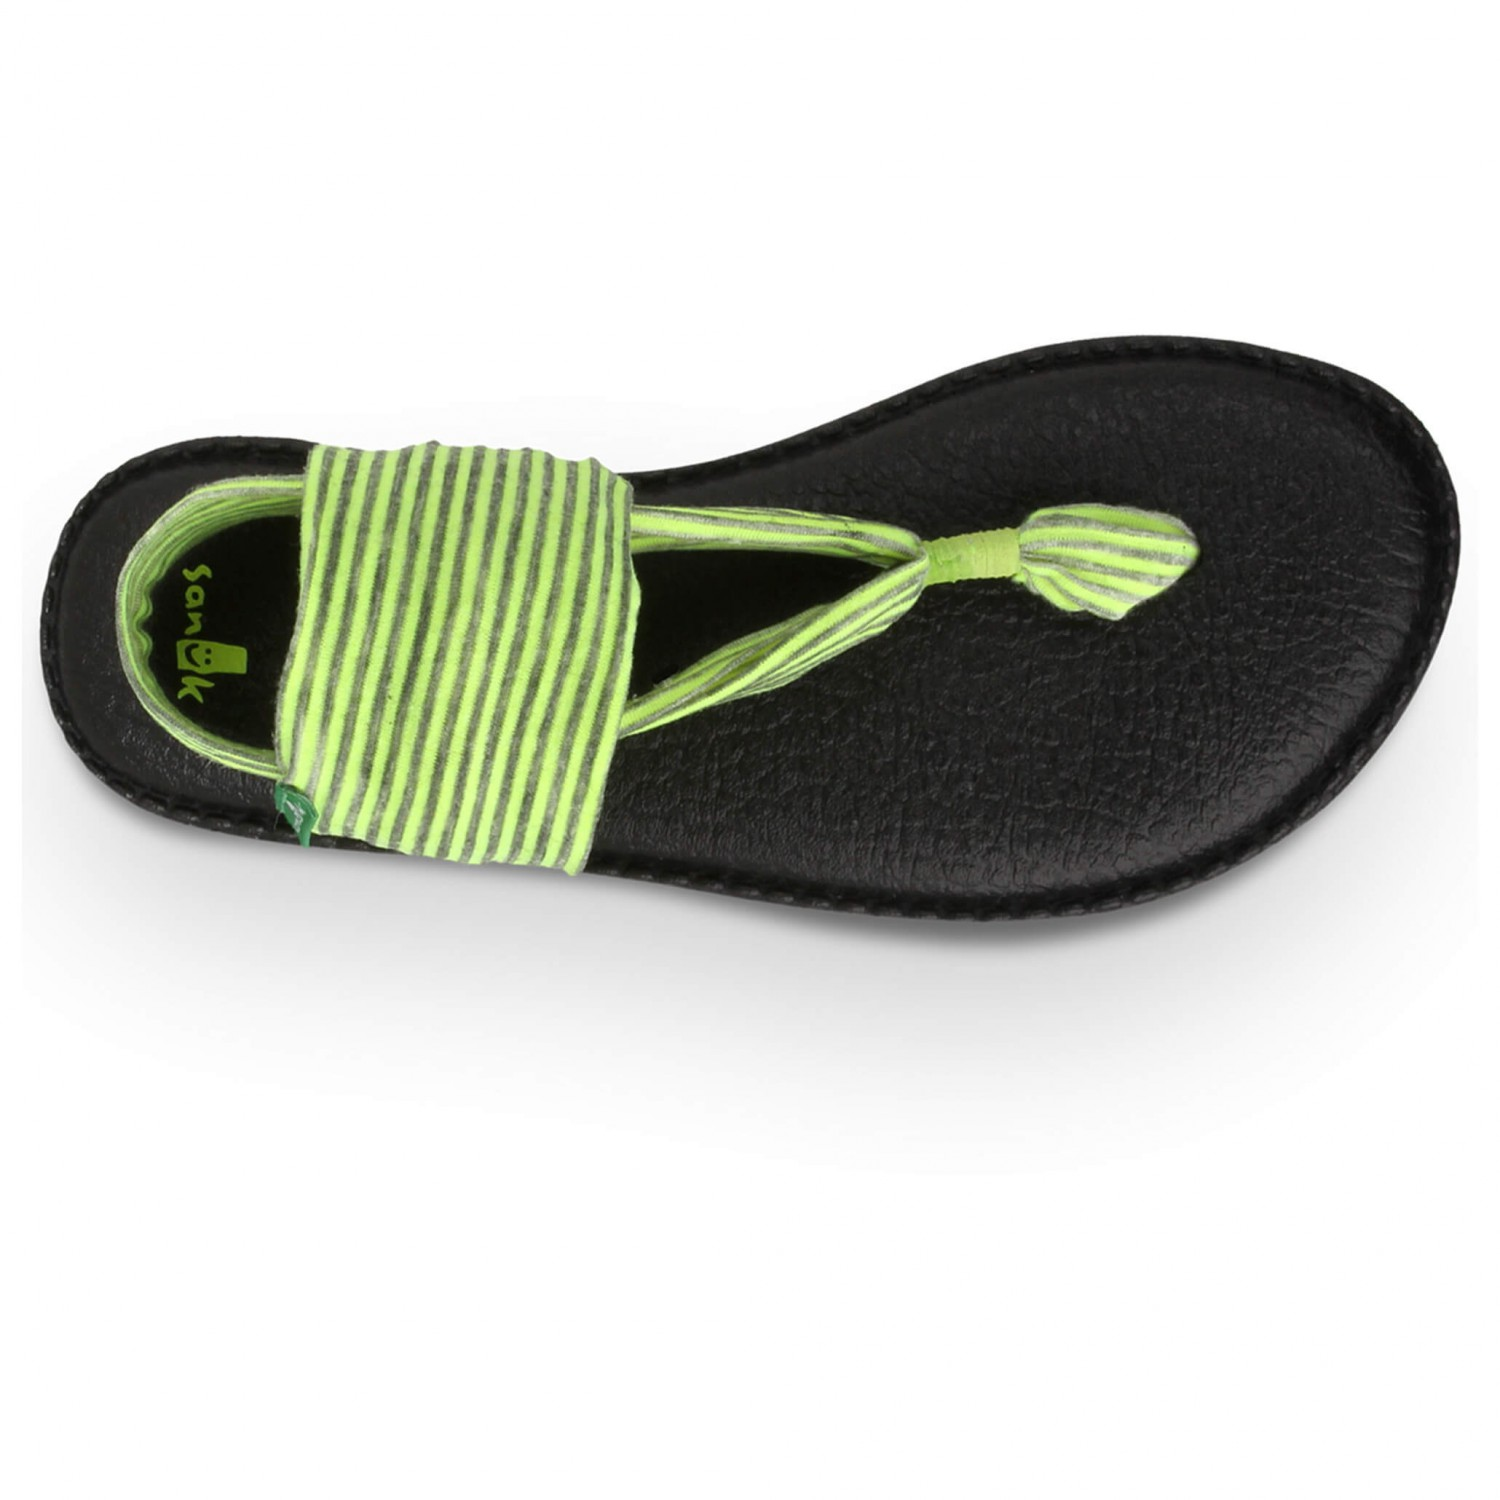 Shop for Sanuk shoes for women, men, kids & toddlers at mennopoolbi.gq Browse sneakers, sandals, slip-ons & more. Totally free shipping & returns. Skip navigation. Free shipping. Free returns. All the time.